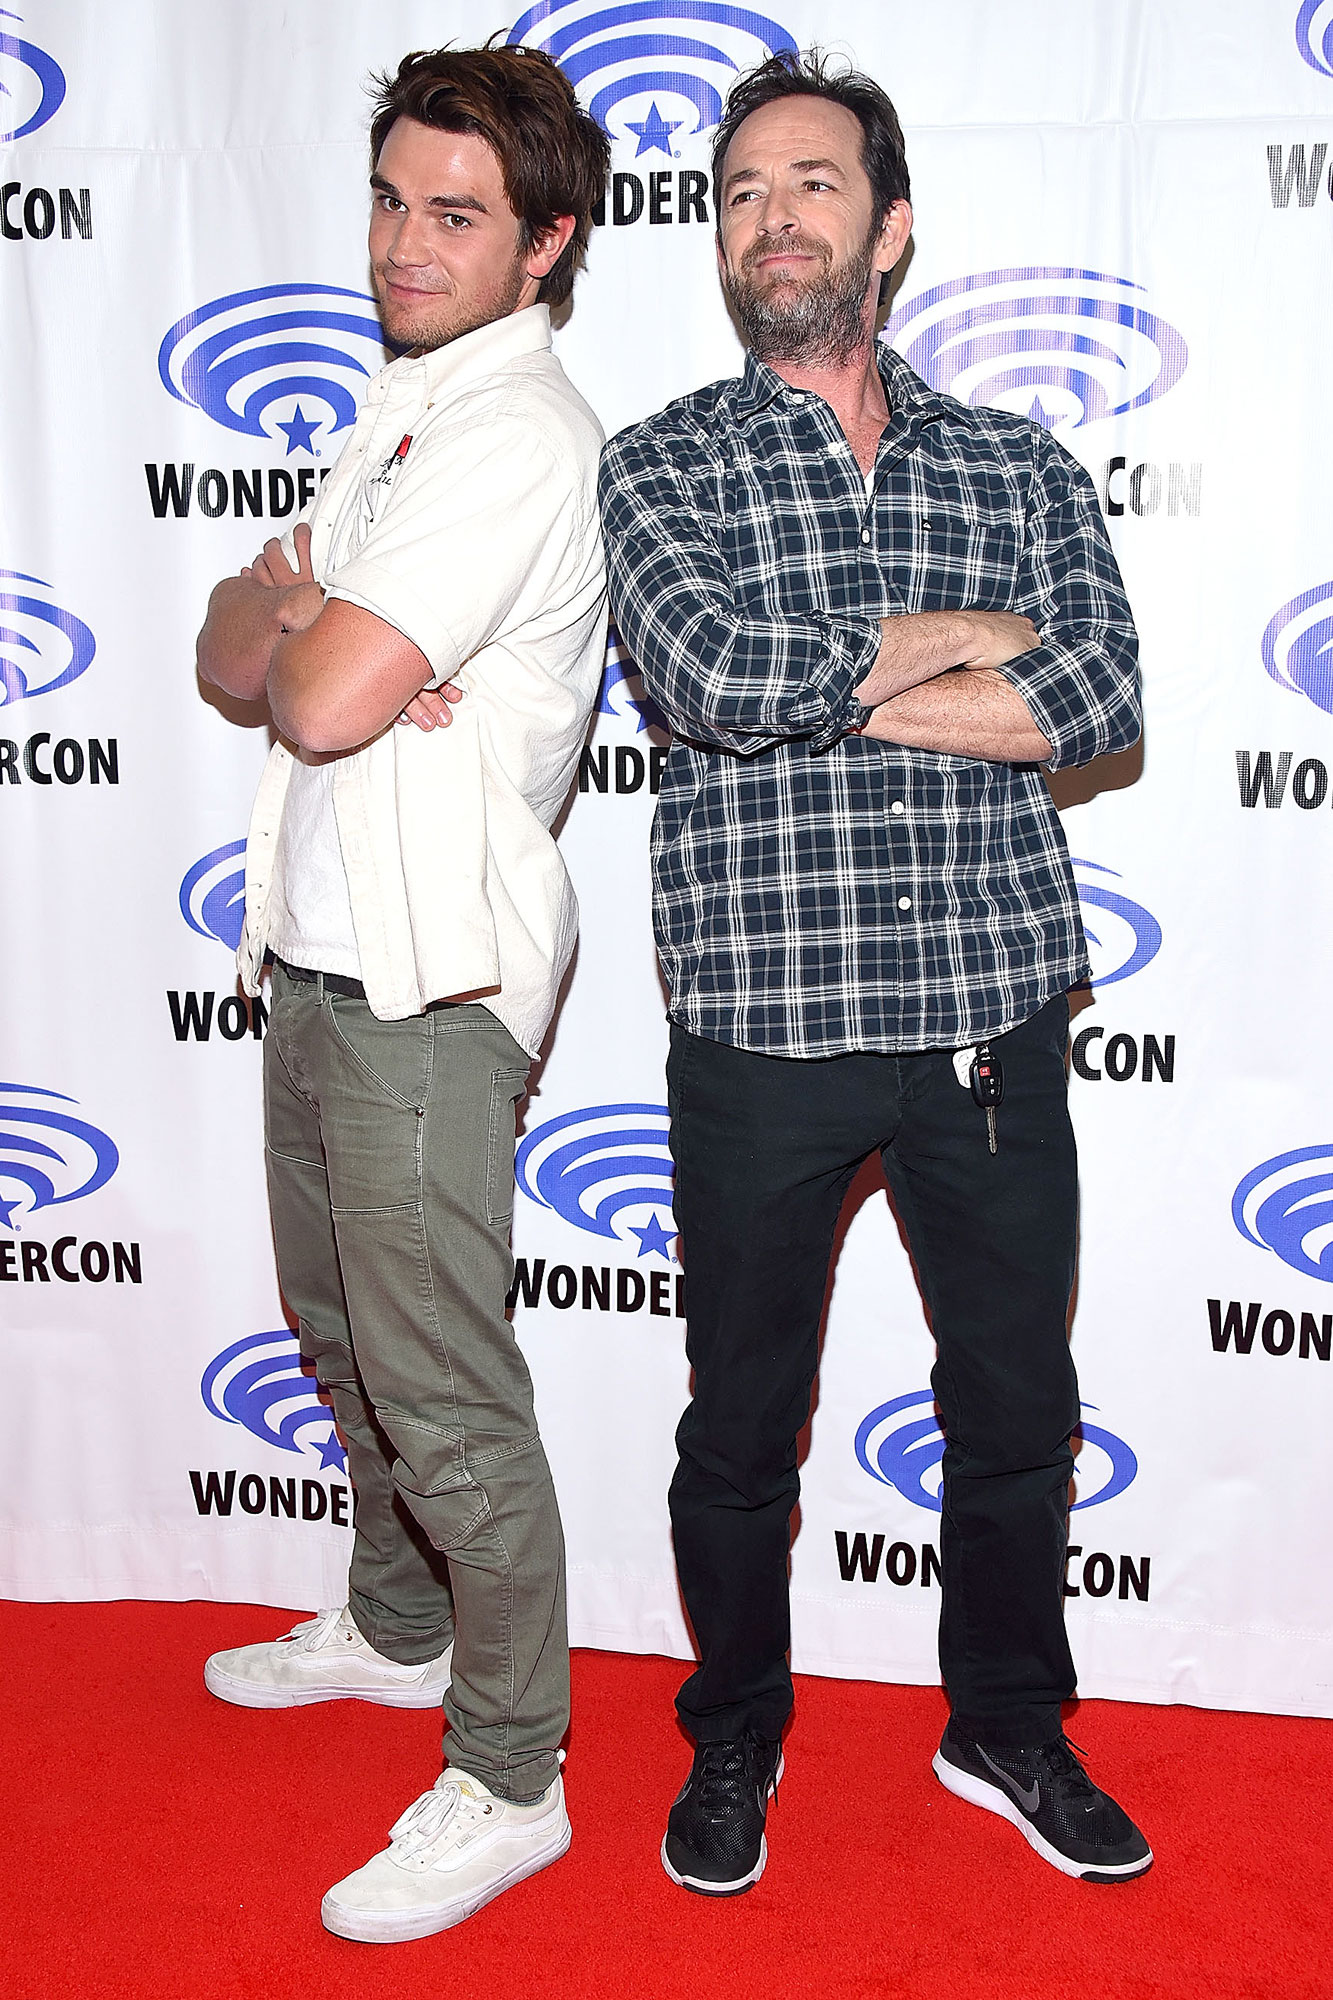 """KJ Apa on Mentor Luke Perry - K.J. Apa and Luke Perry attend the """"Riverdale"""" panel at WonderCon 2017 – Day 1 at Anaheim Convention Center on March 31, 2017 in Anaheim, California."""